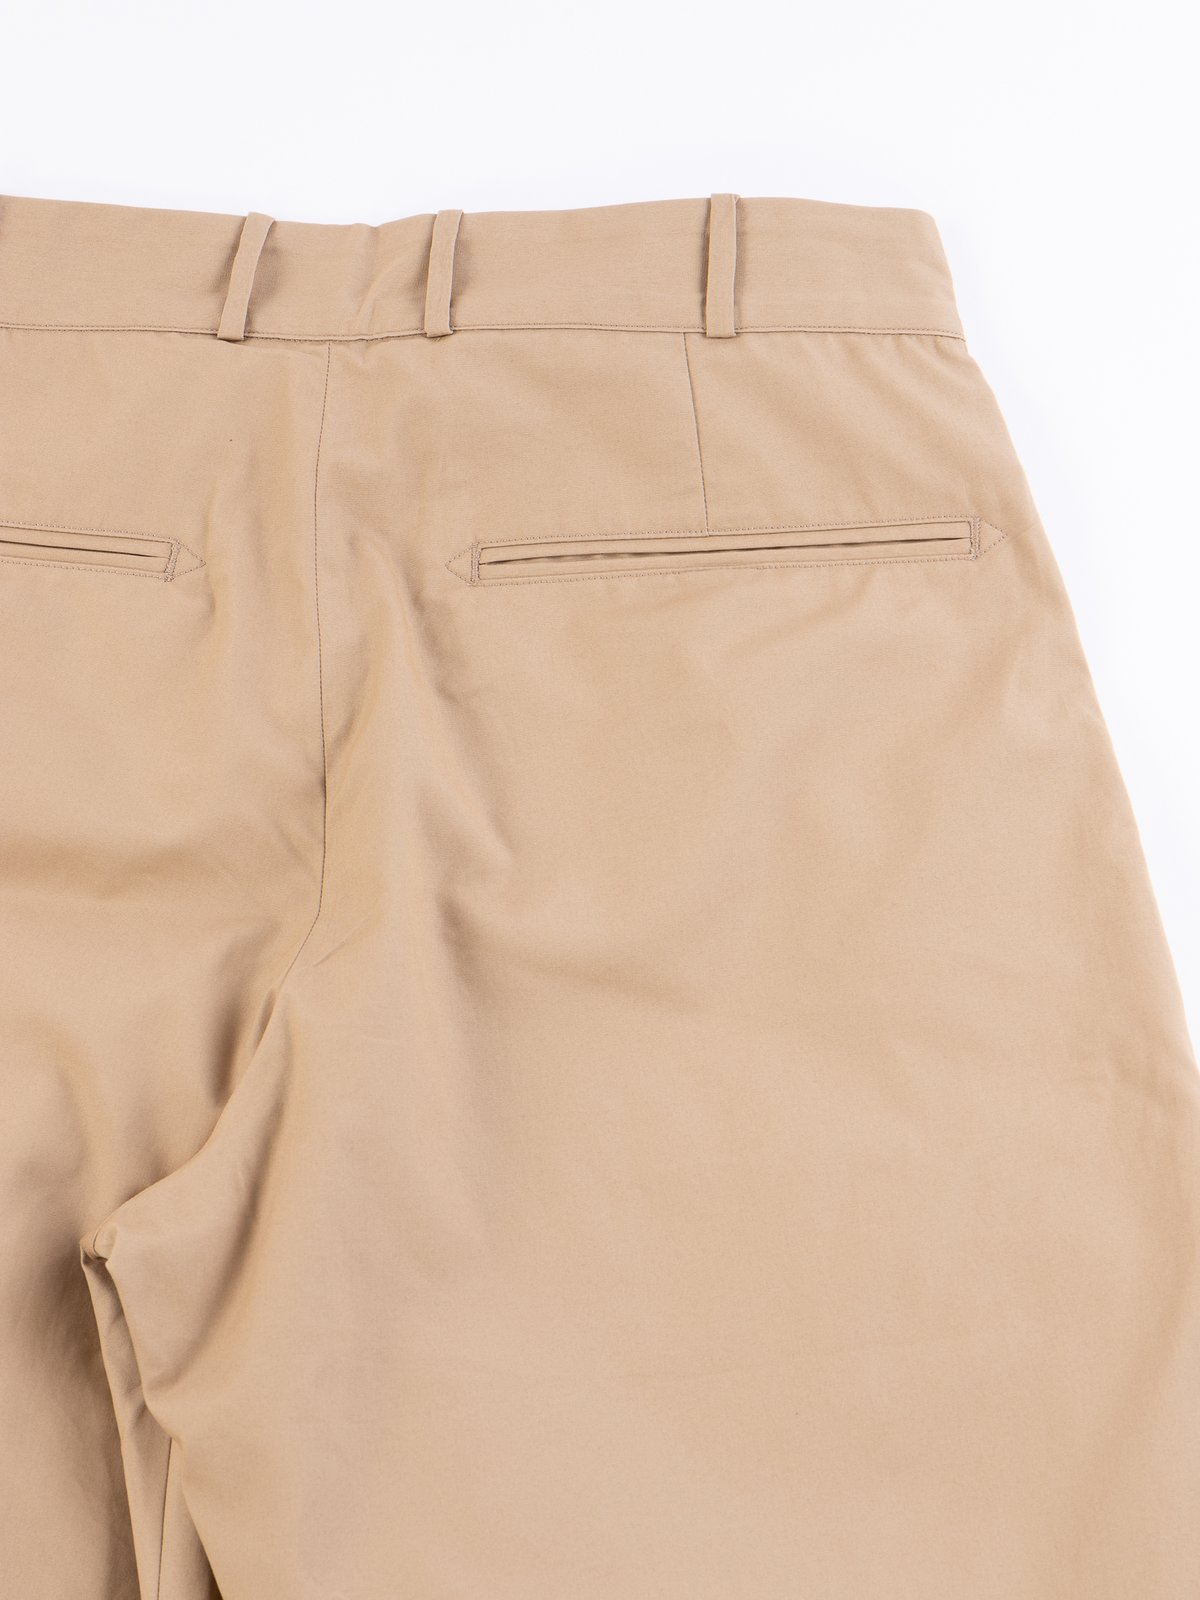 Khaki Oxford Vancloth Triple Tuck Wide Pant - Image 6